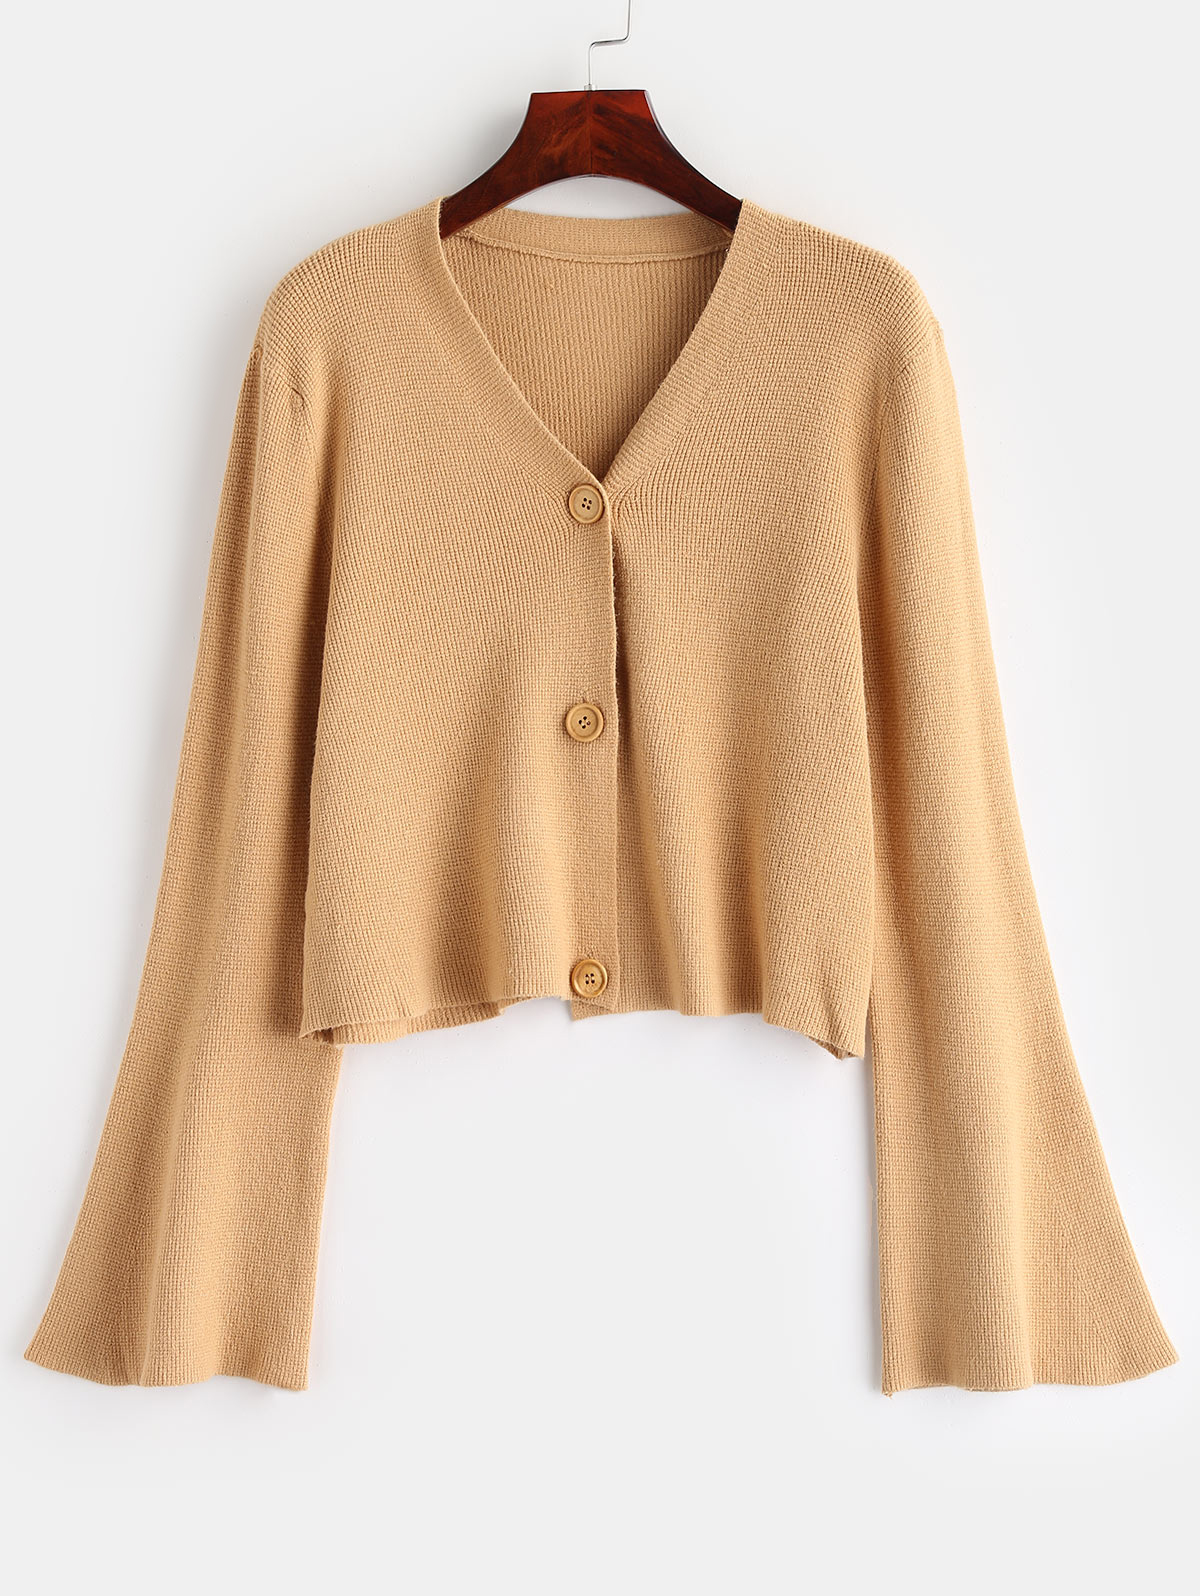 ZAFUL Button Up Flare Sleeves Cardigan Sweater Women V Neck Long Sleeve Knitted Cardigan Femme Casual Short Clothes 2019 Autumn